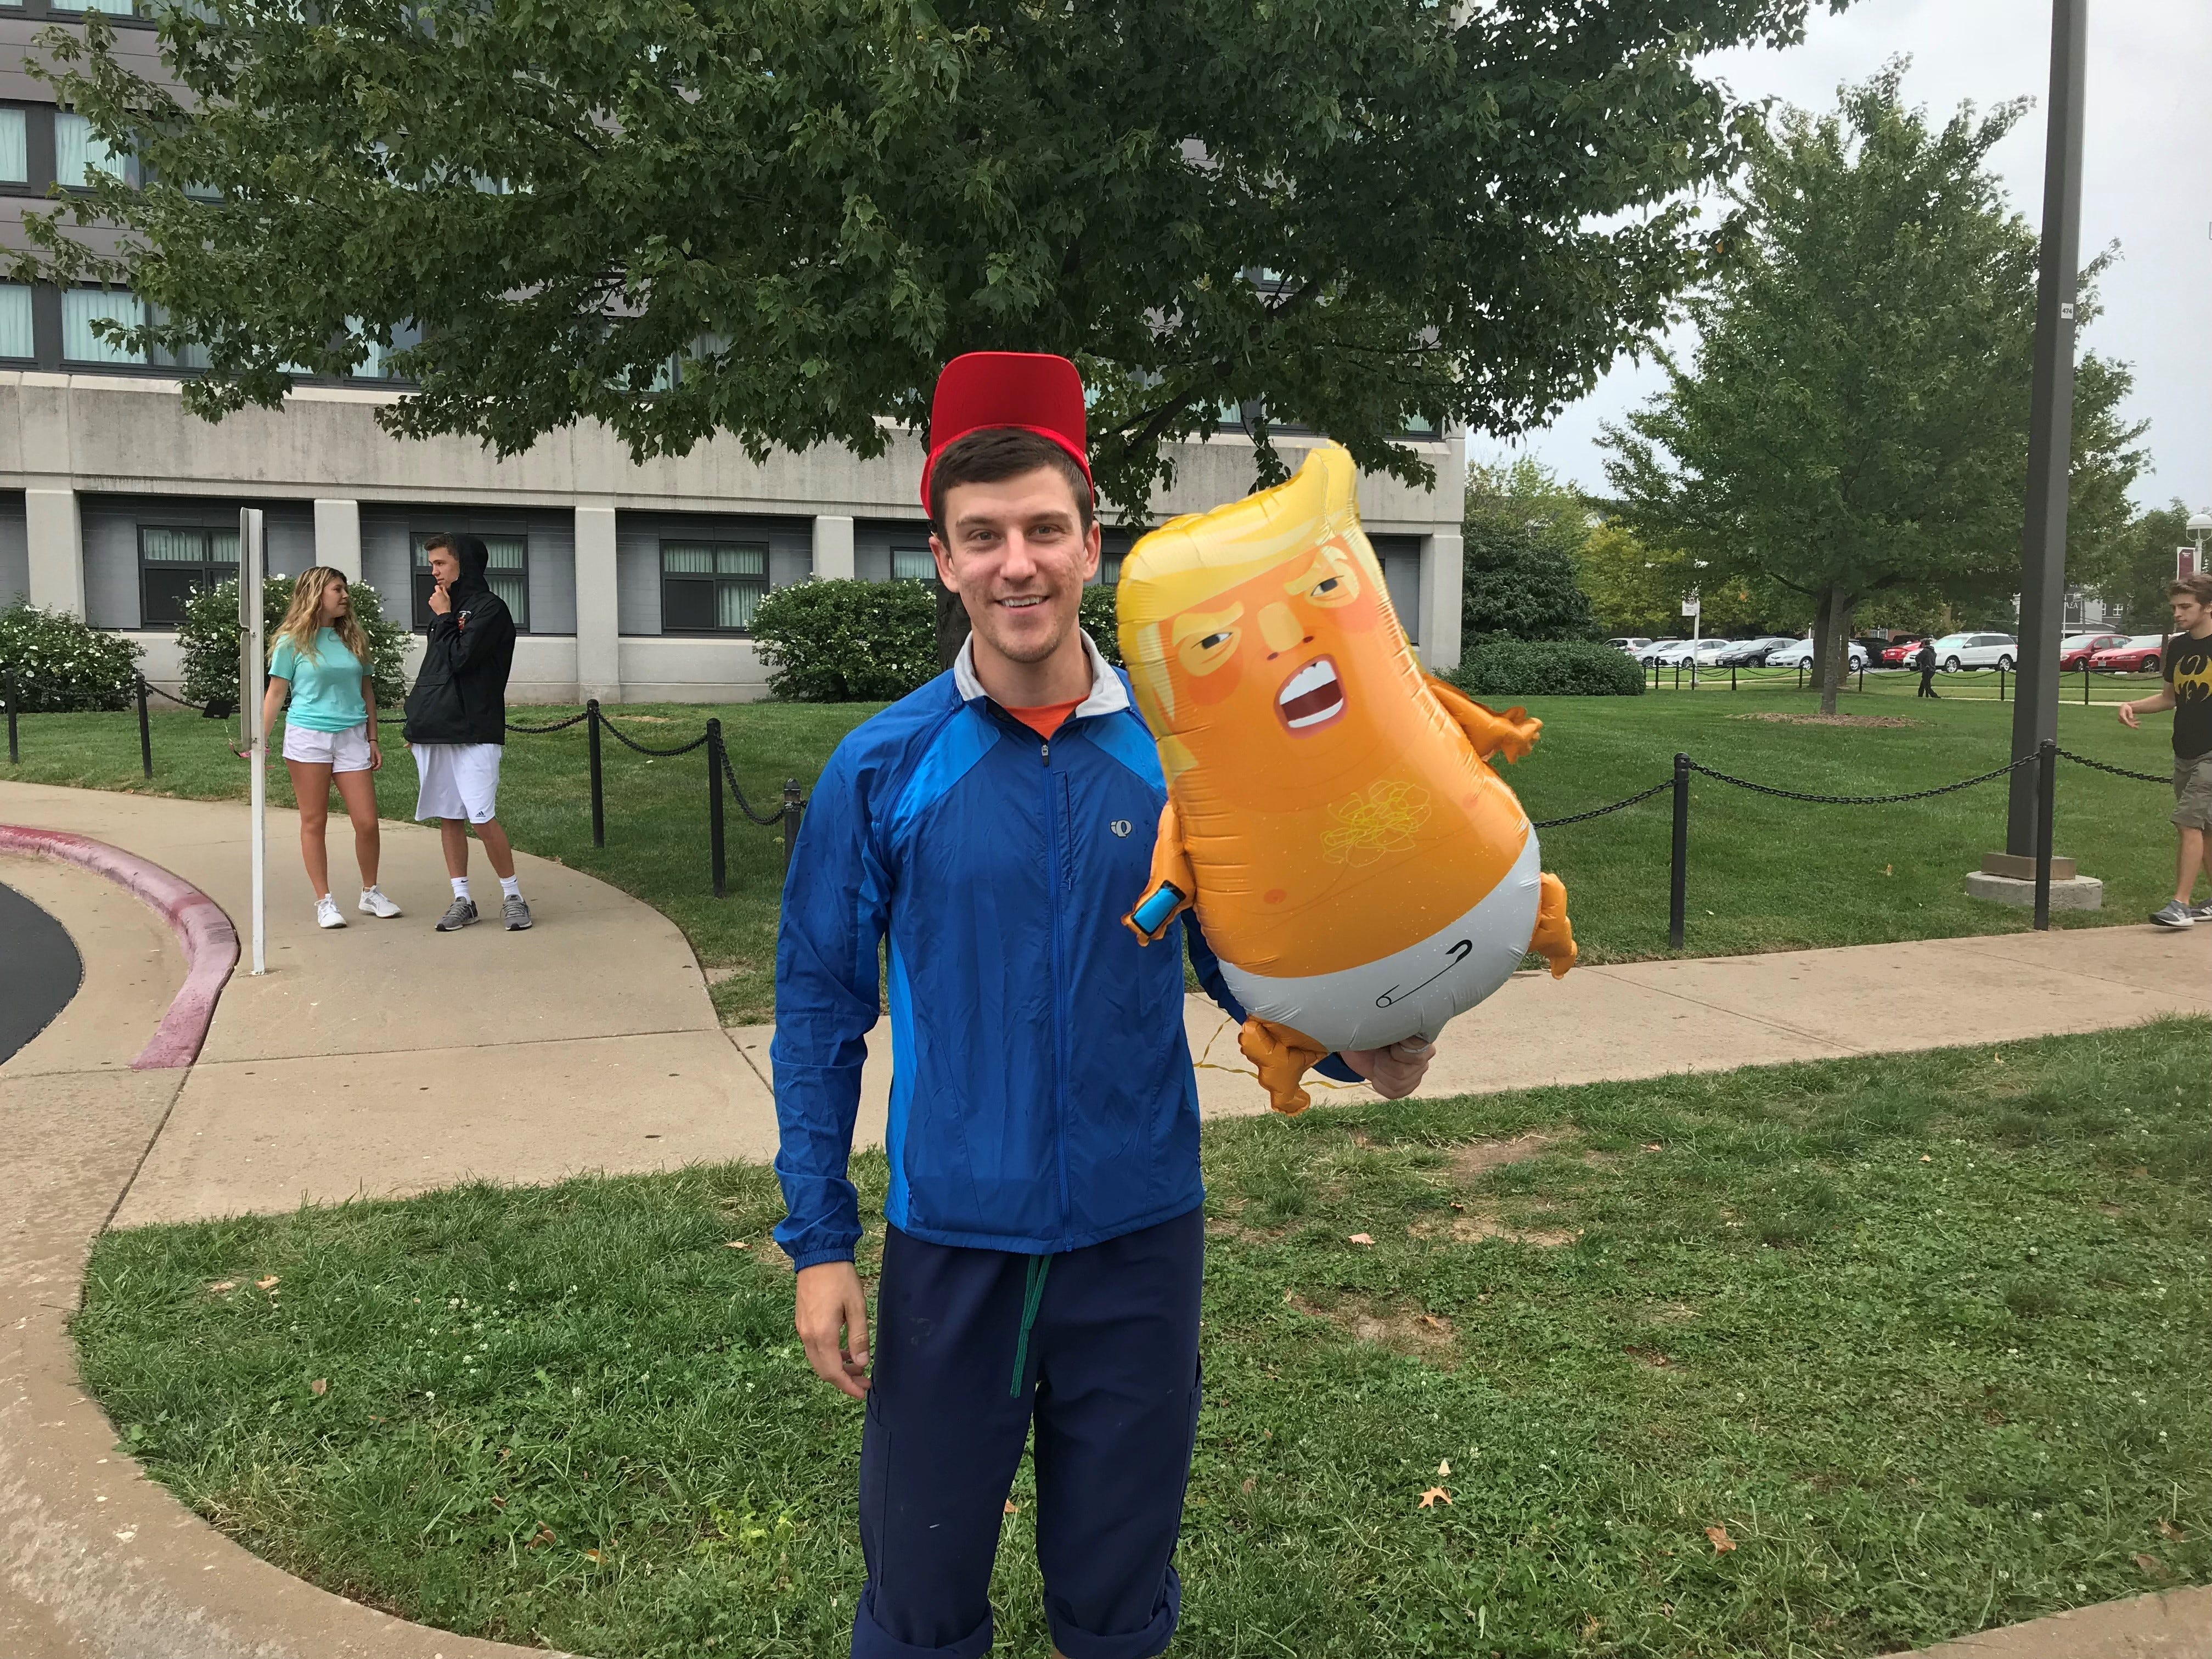 Joe McGreevy said someone handed him a baby Trump balloon. He says he doesn't support the president but isn't here to protest him. He hopes to attend the rally to satisfy his curiosity.